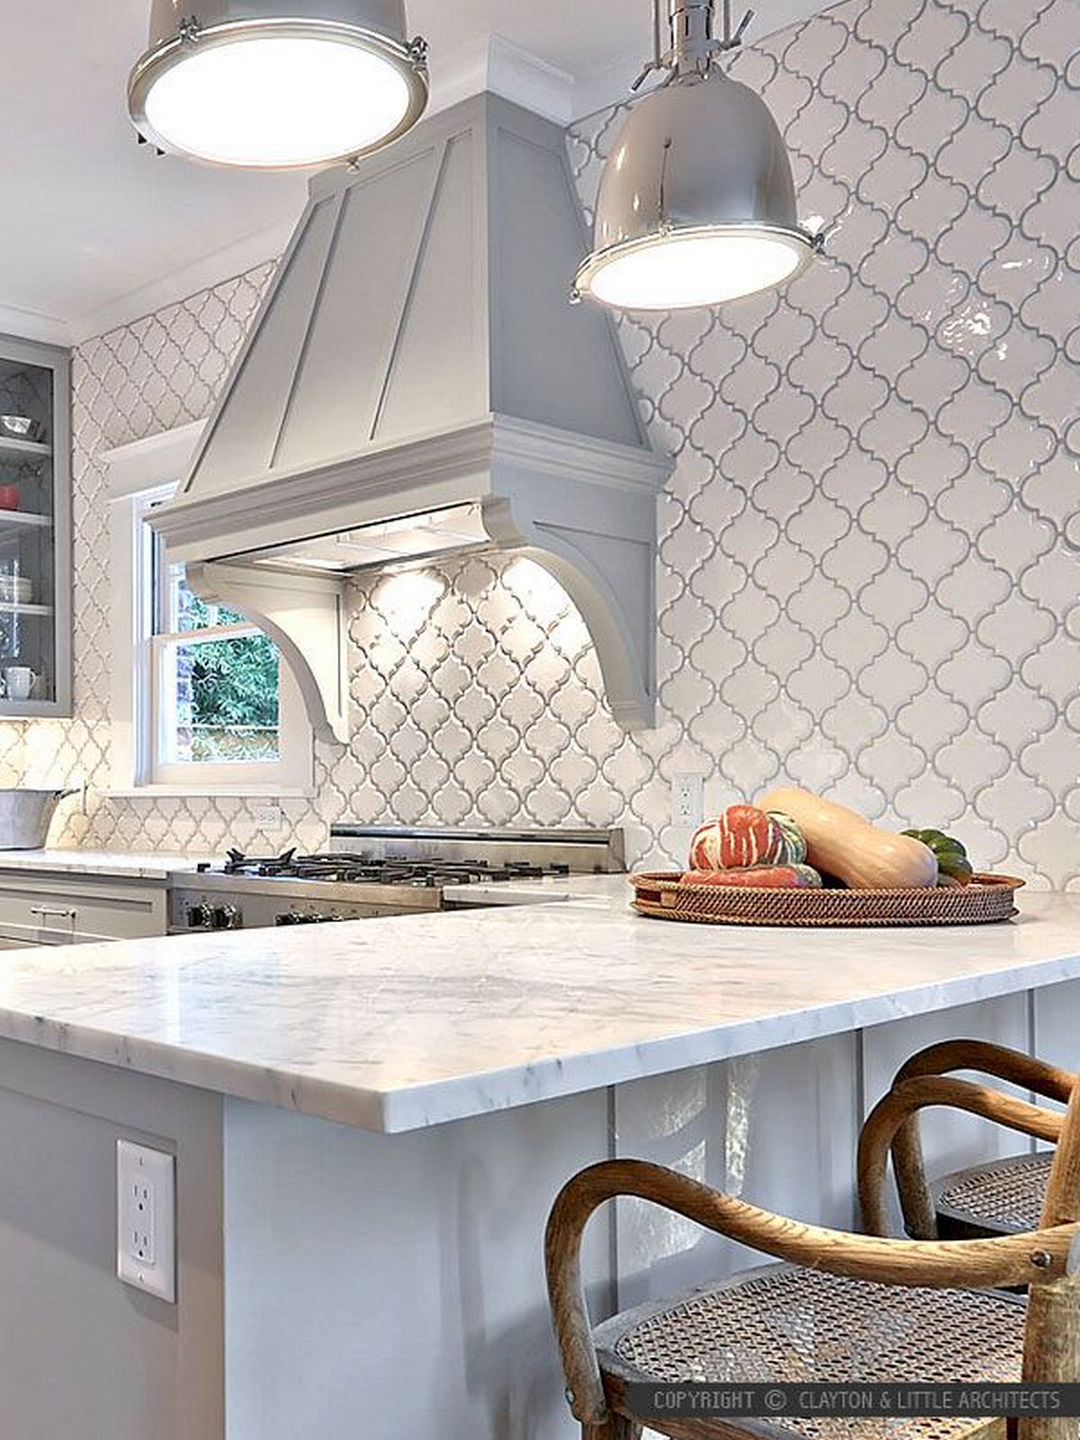 26 Nice Kitchen Tile Design Ideas Https://www.futuristarchitecture.com/